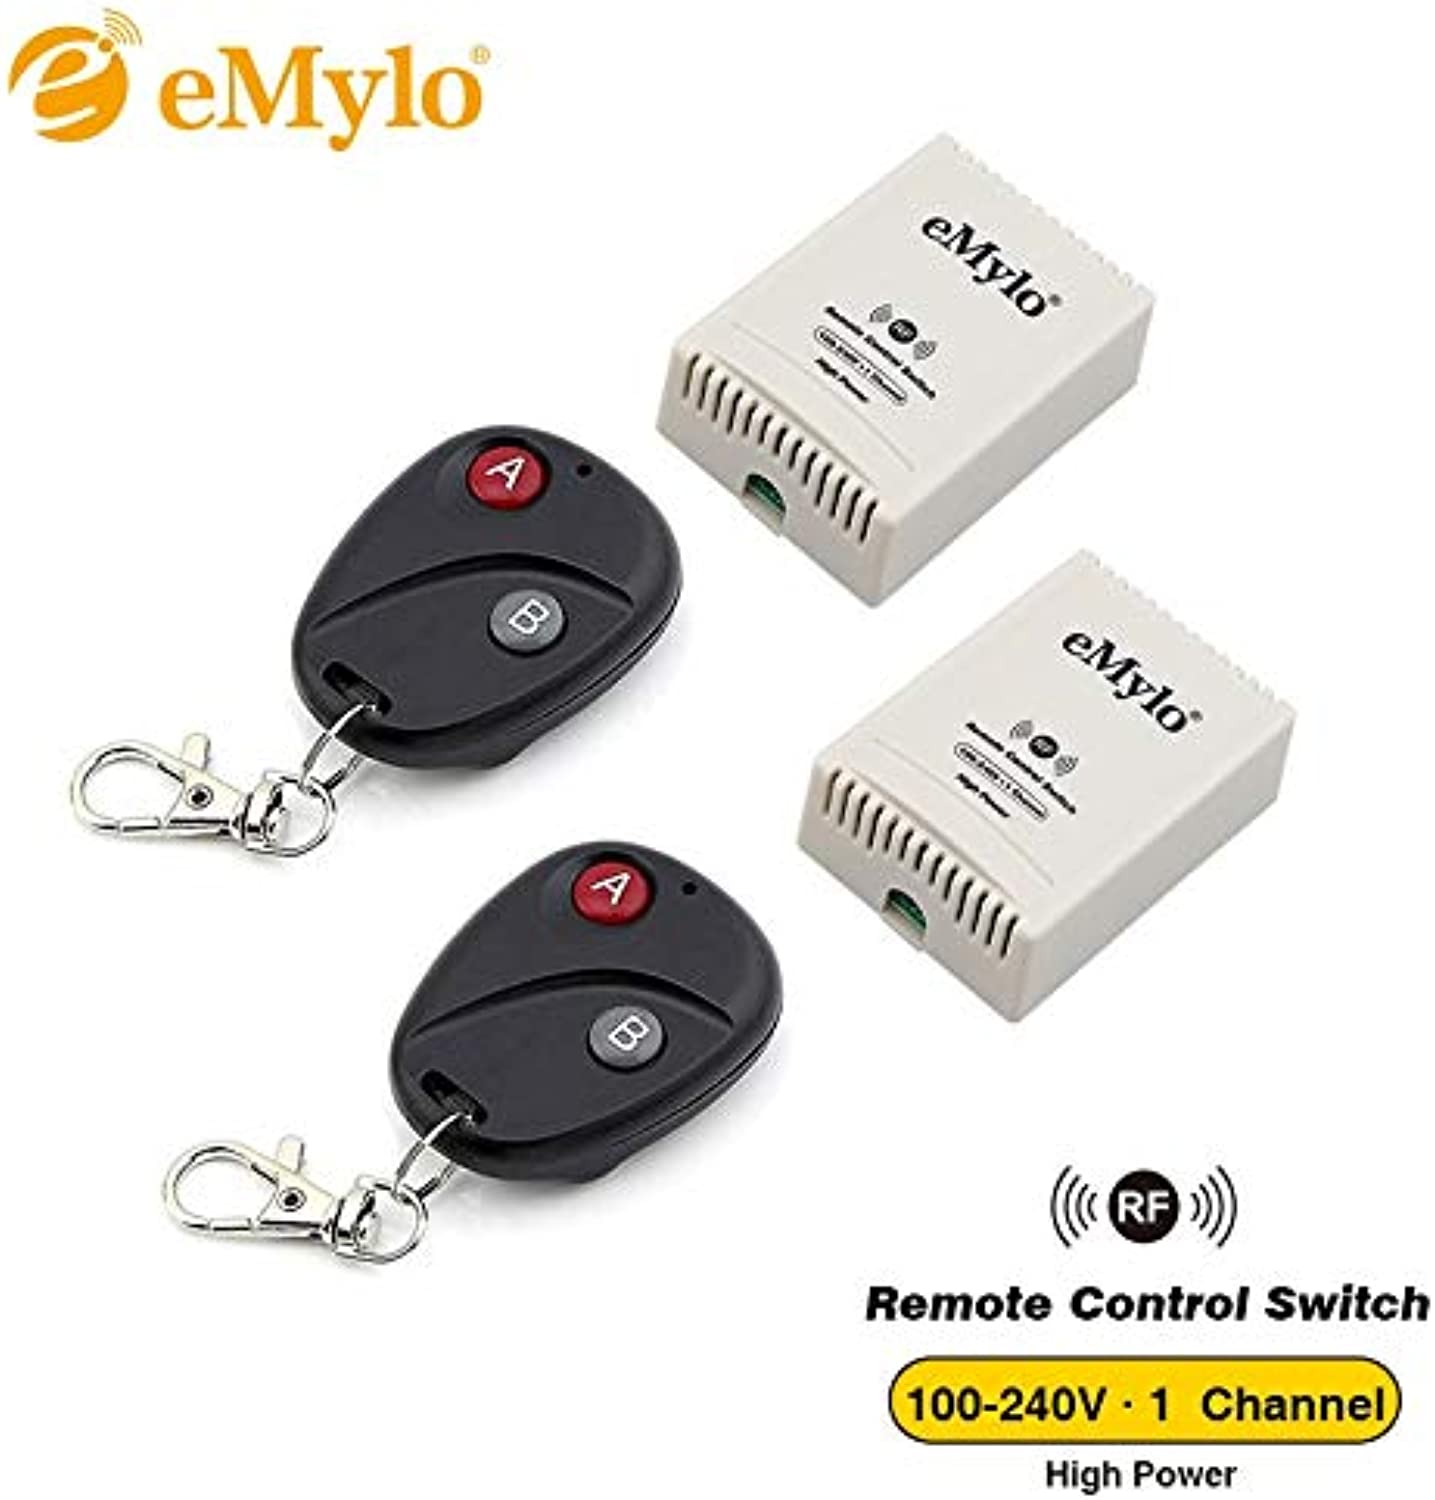 10A 2500W 100-240V AC Switch Control Remote RF EMylo Switch